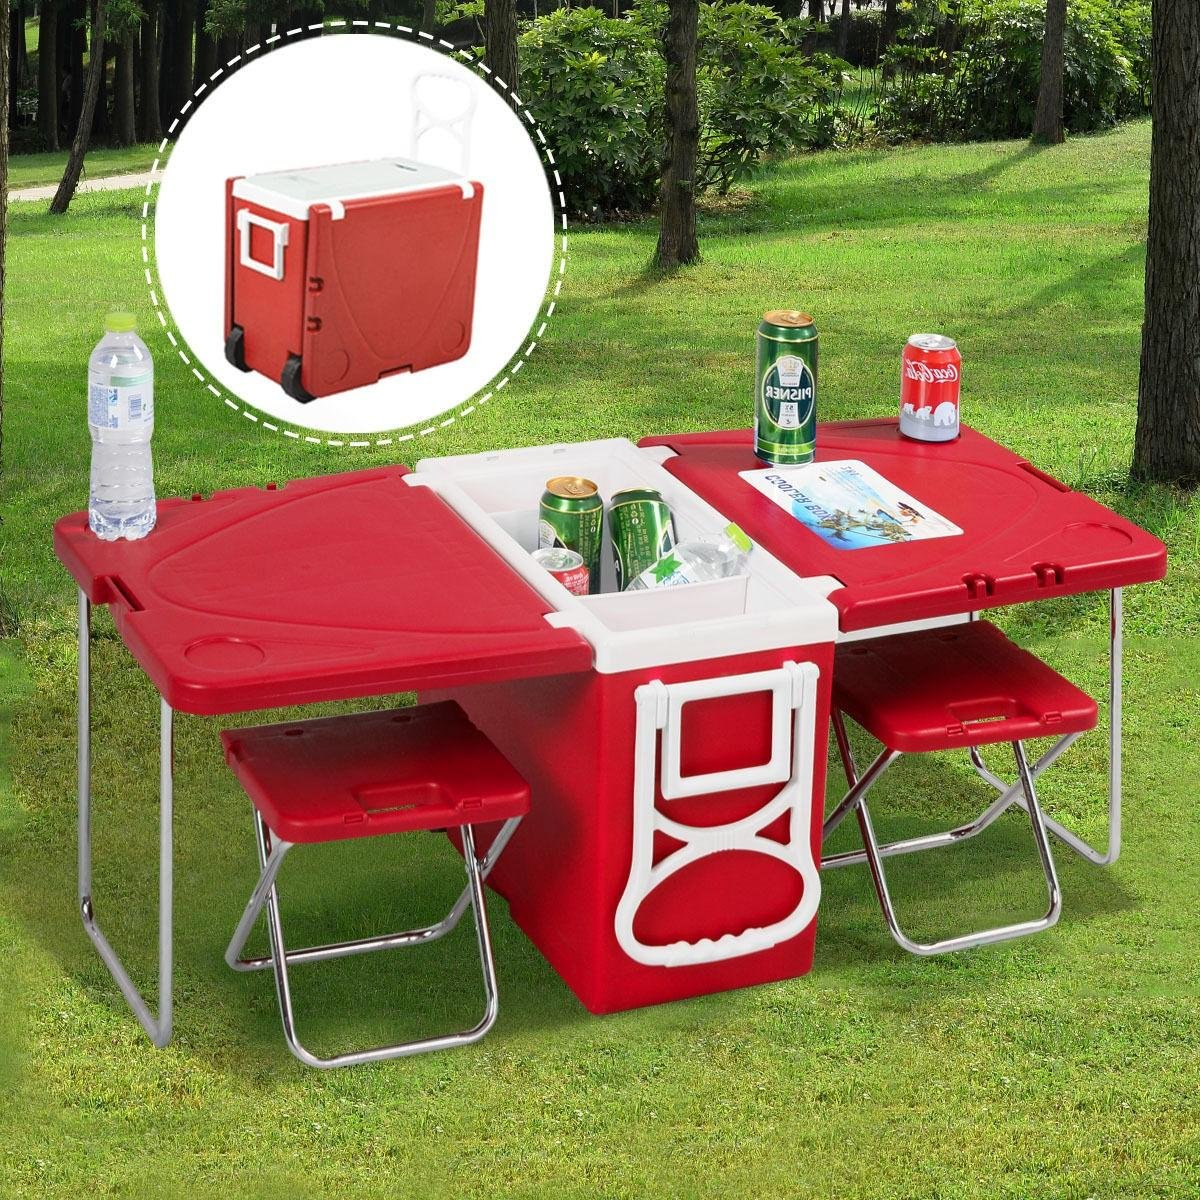 Amazon folding picnic tablelti function rolling cooler amazon folding picnic tablelti function rolling cooler picnic camping outdoor w table 2 chairs redolers with wheelspicnic cooler watchthetrailerfo